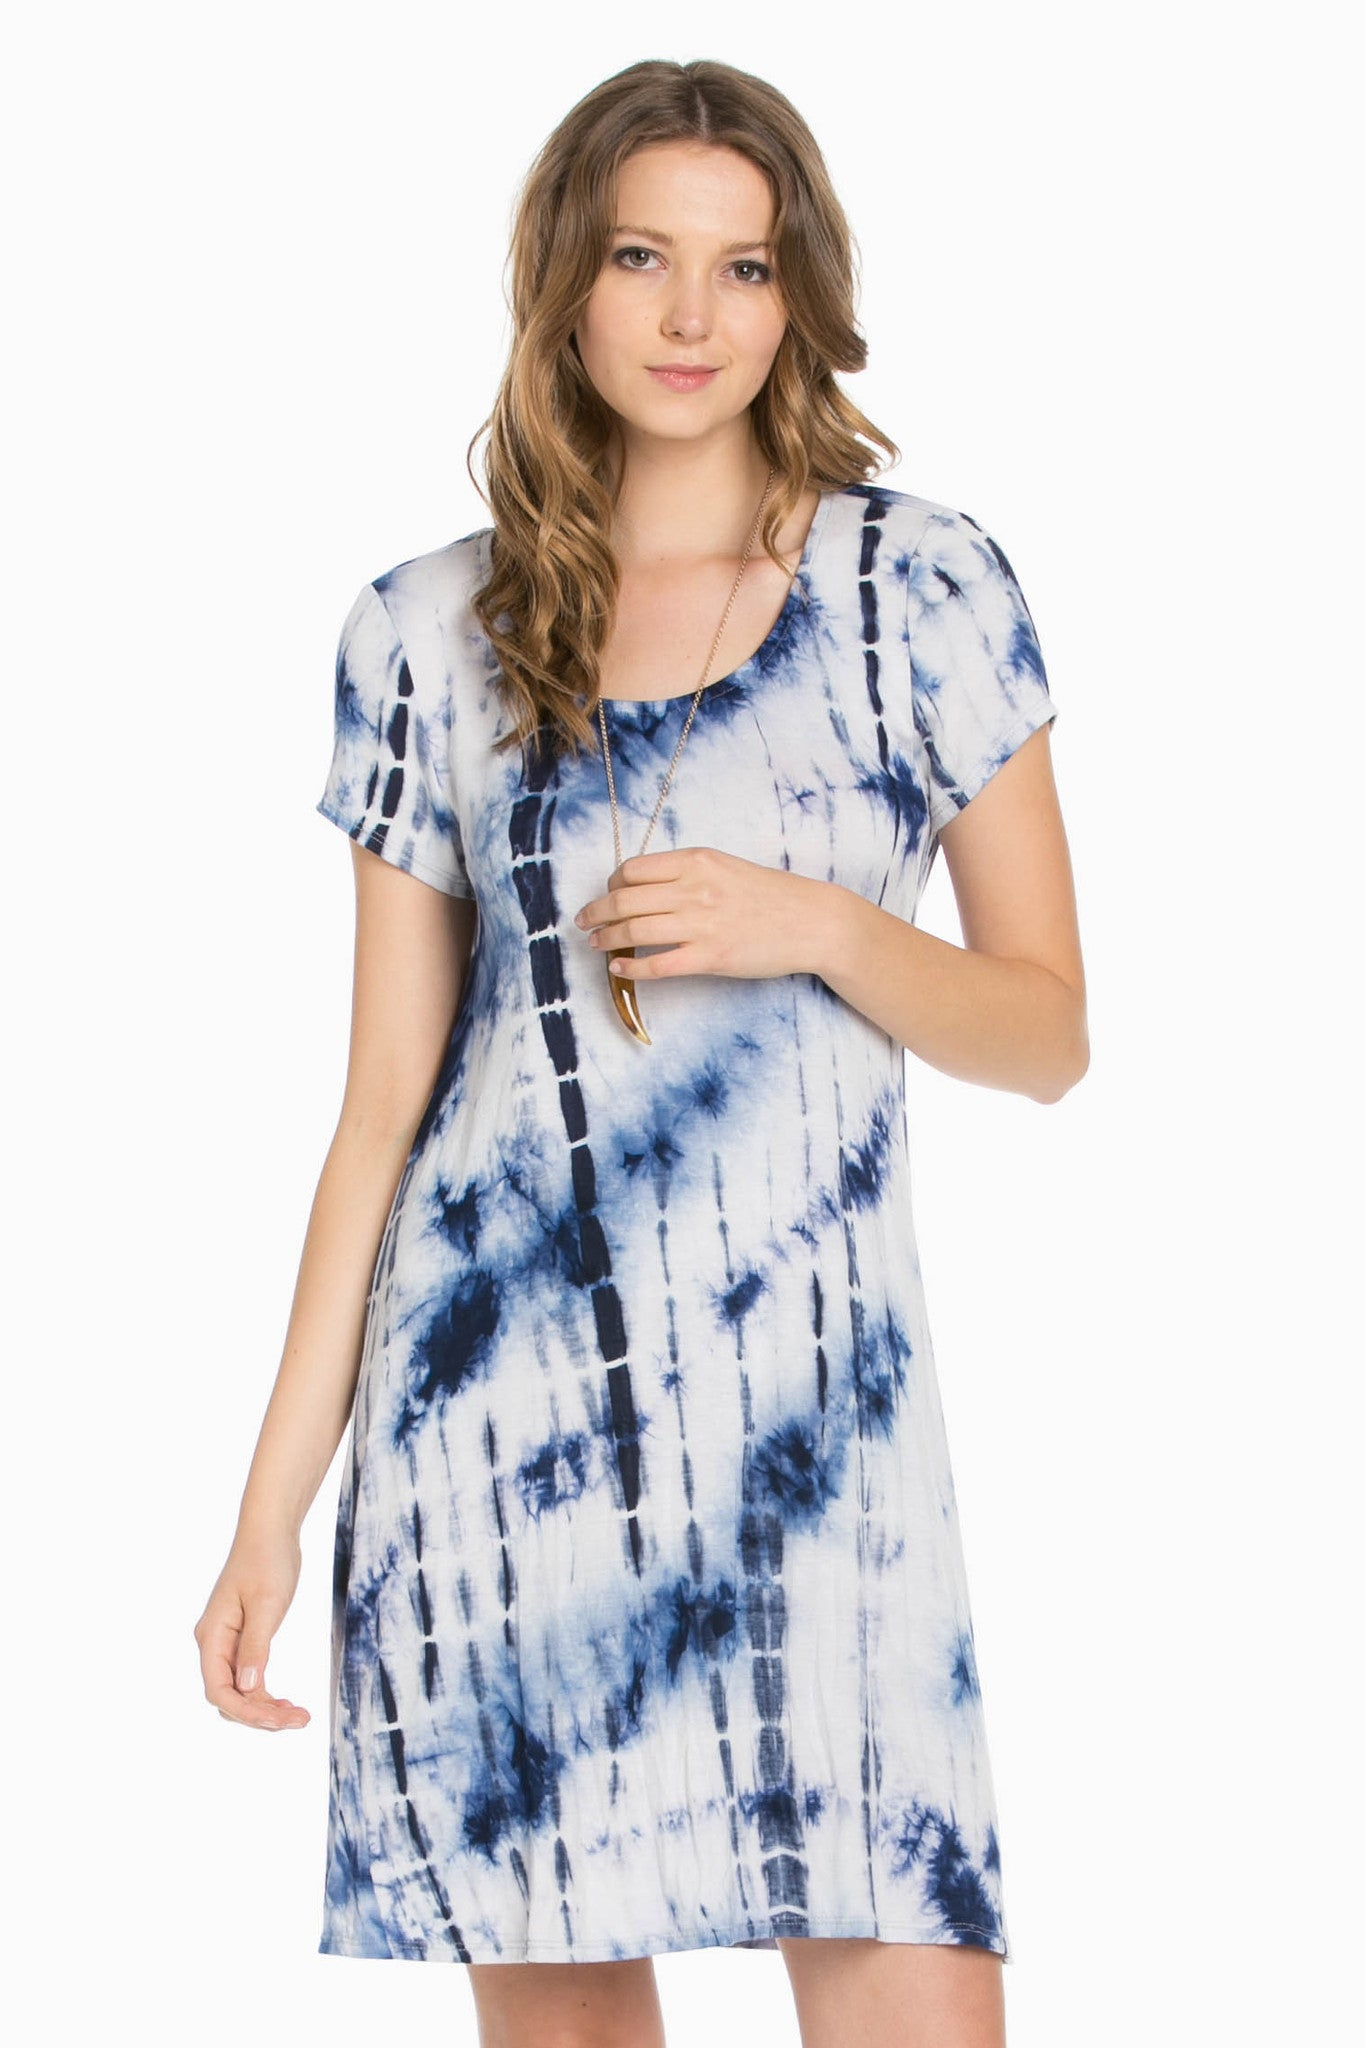 Open Back Blue Tie Dye Dress - Dresses - My Yuccie - 1